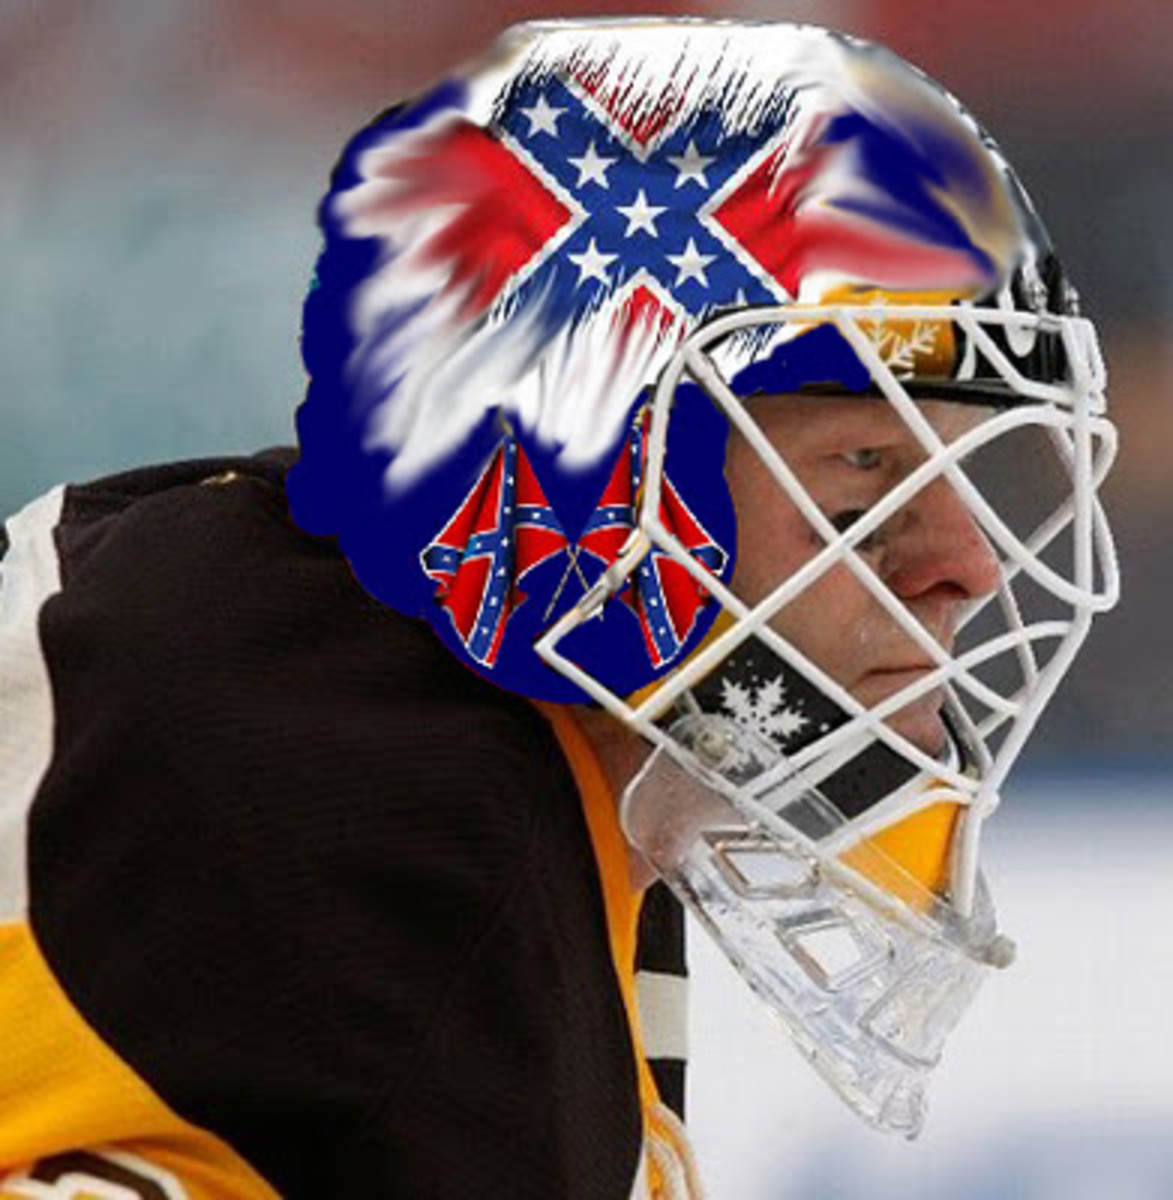 The Extreme Right Political Views Of Boston Bruins Goalie